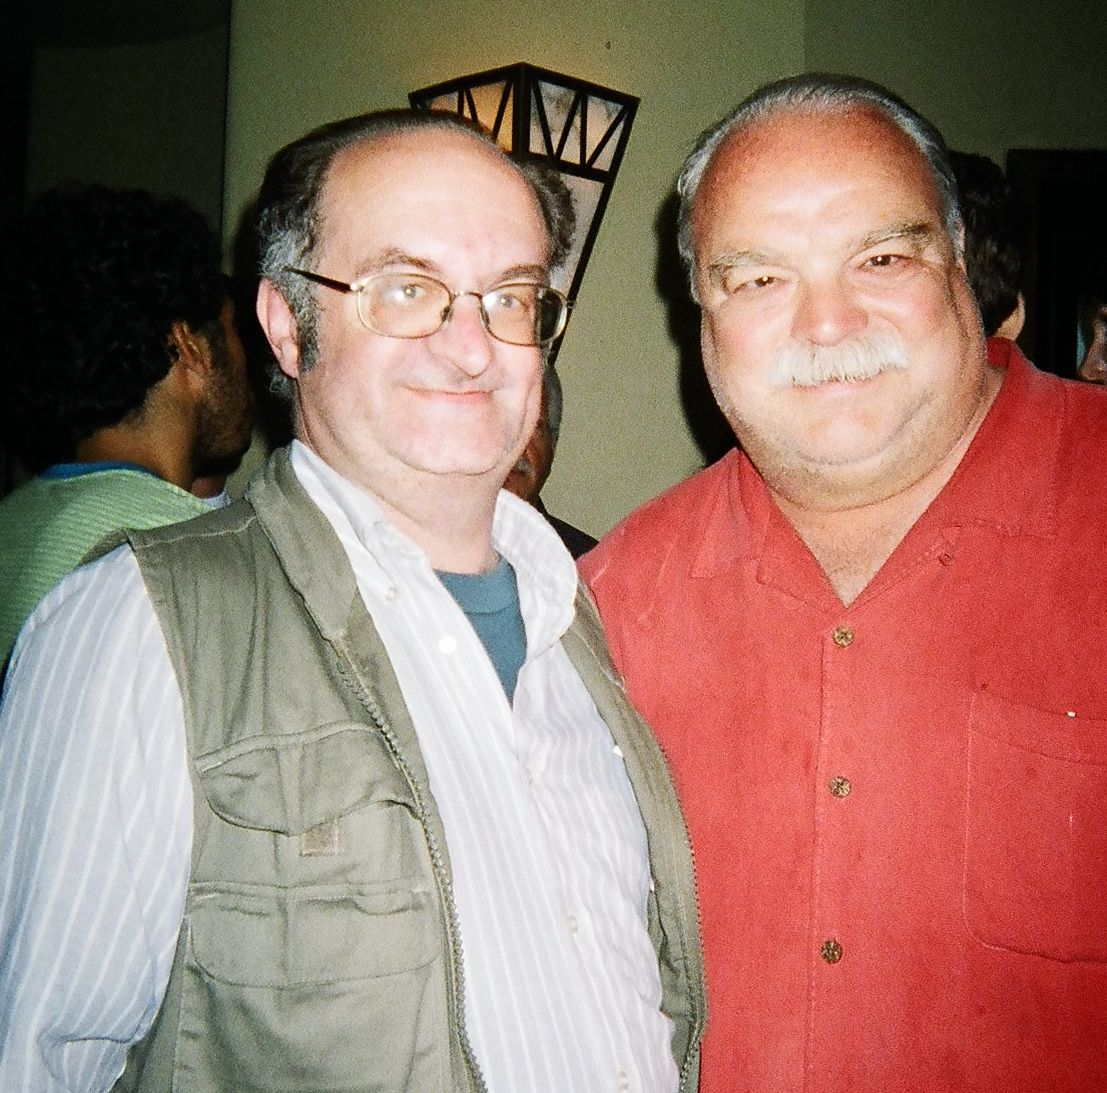 With veteran character actor Richard Riehle